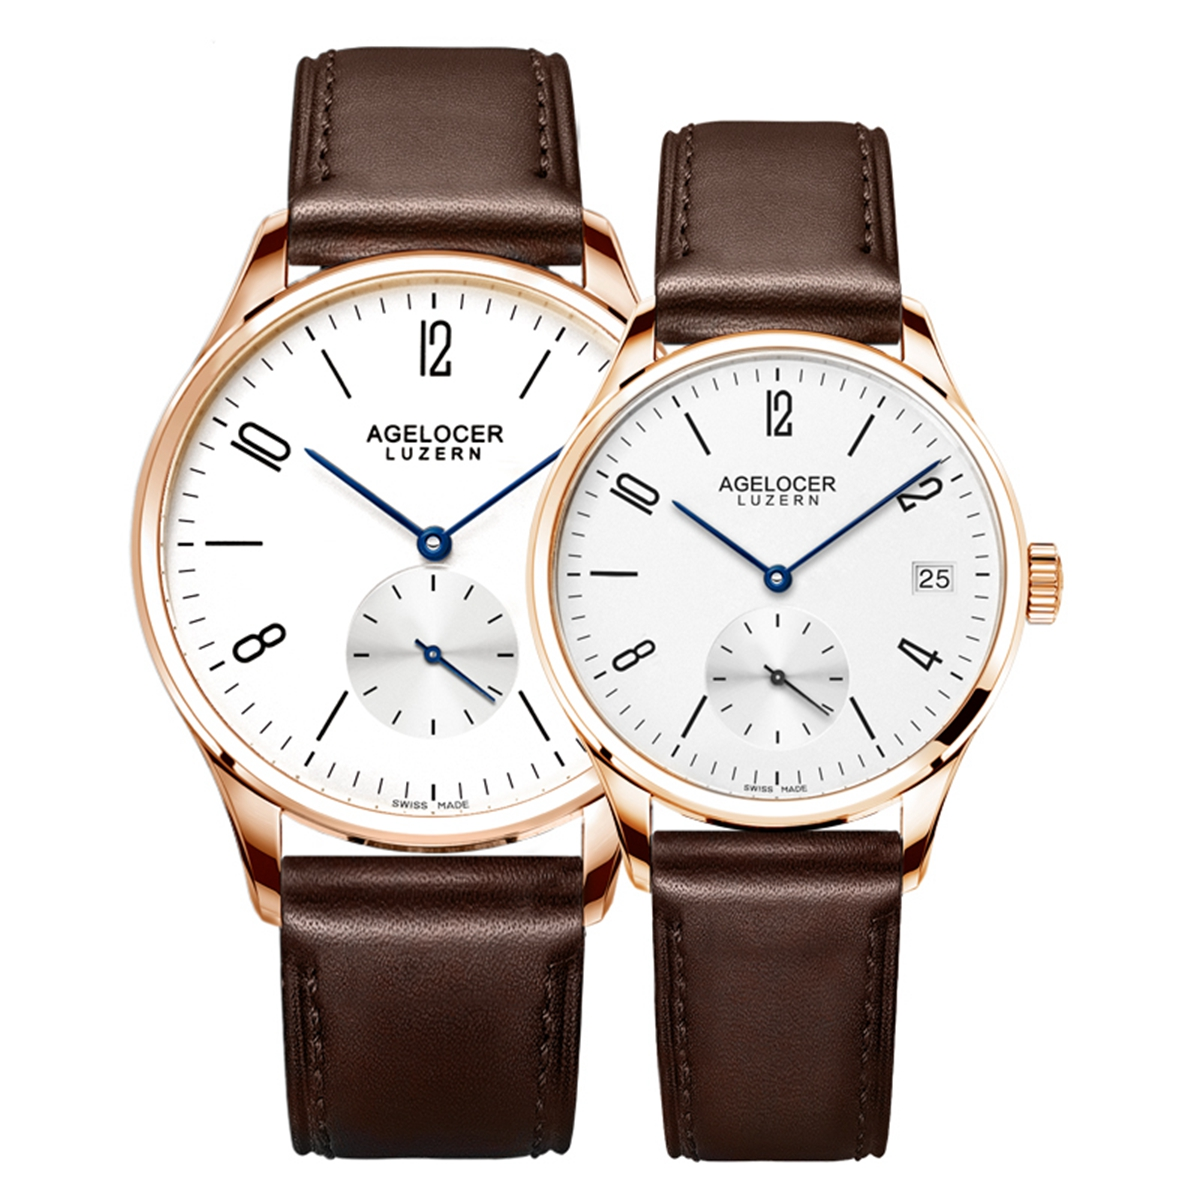 Agelocer Ultra Thin Couple Watches Rose Gold Automatic Watches for Men Women 1101A1-1202A1GW